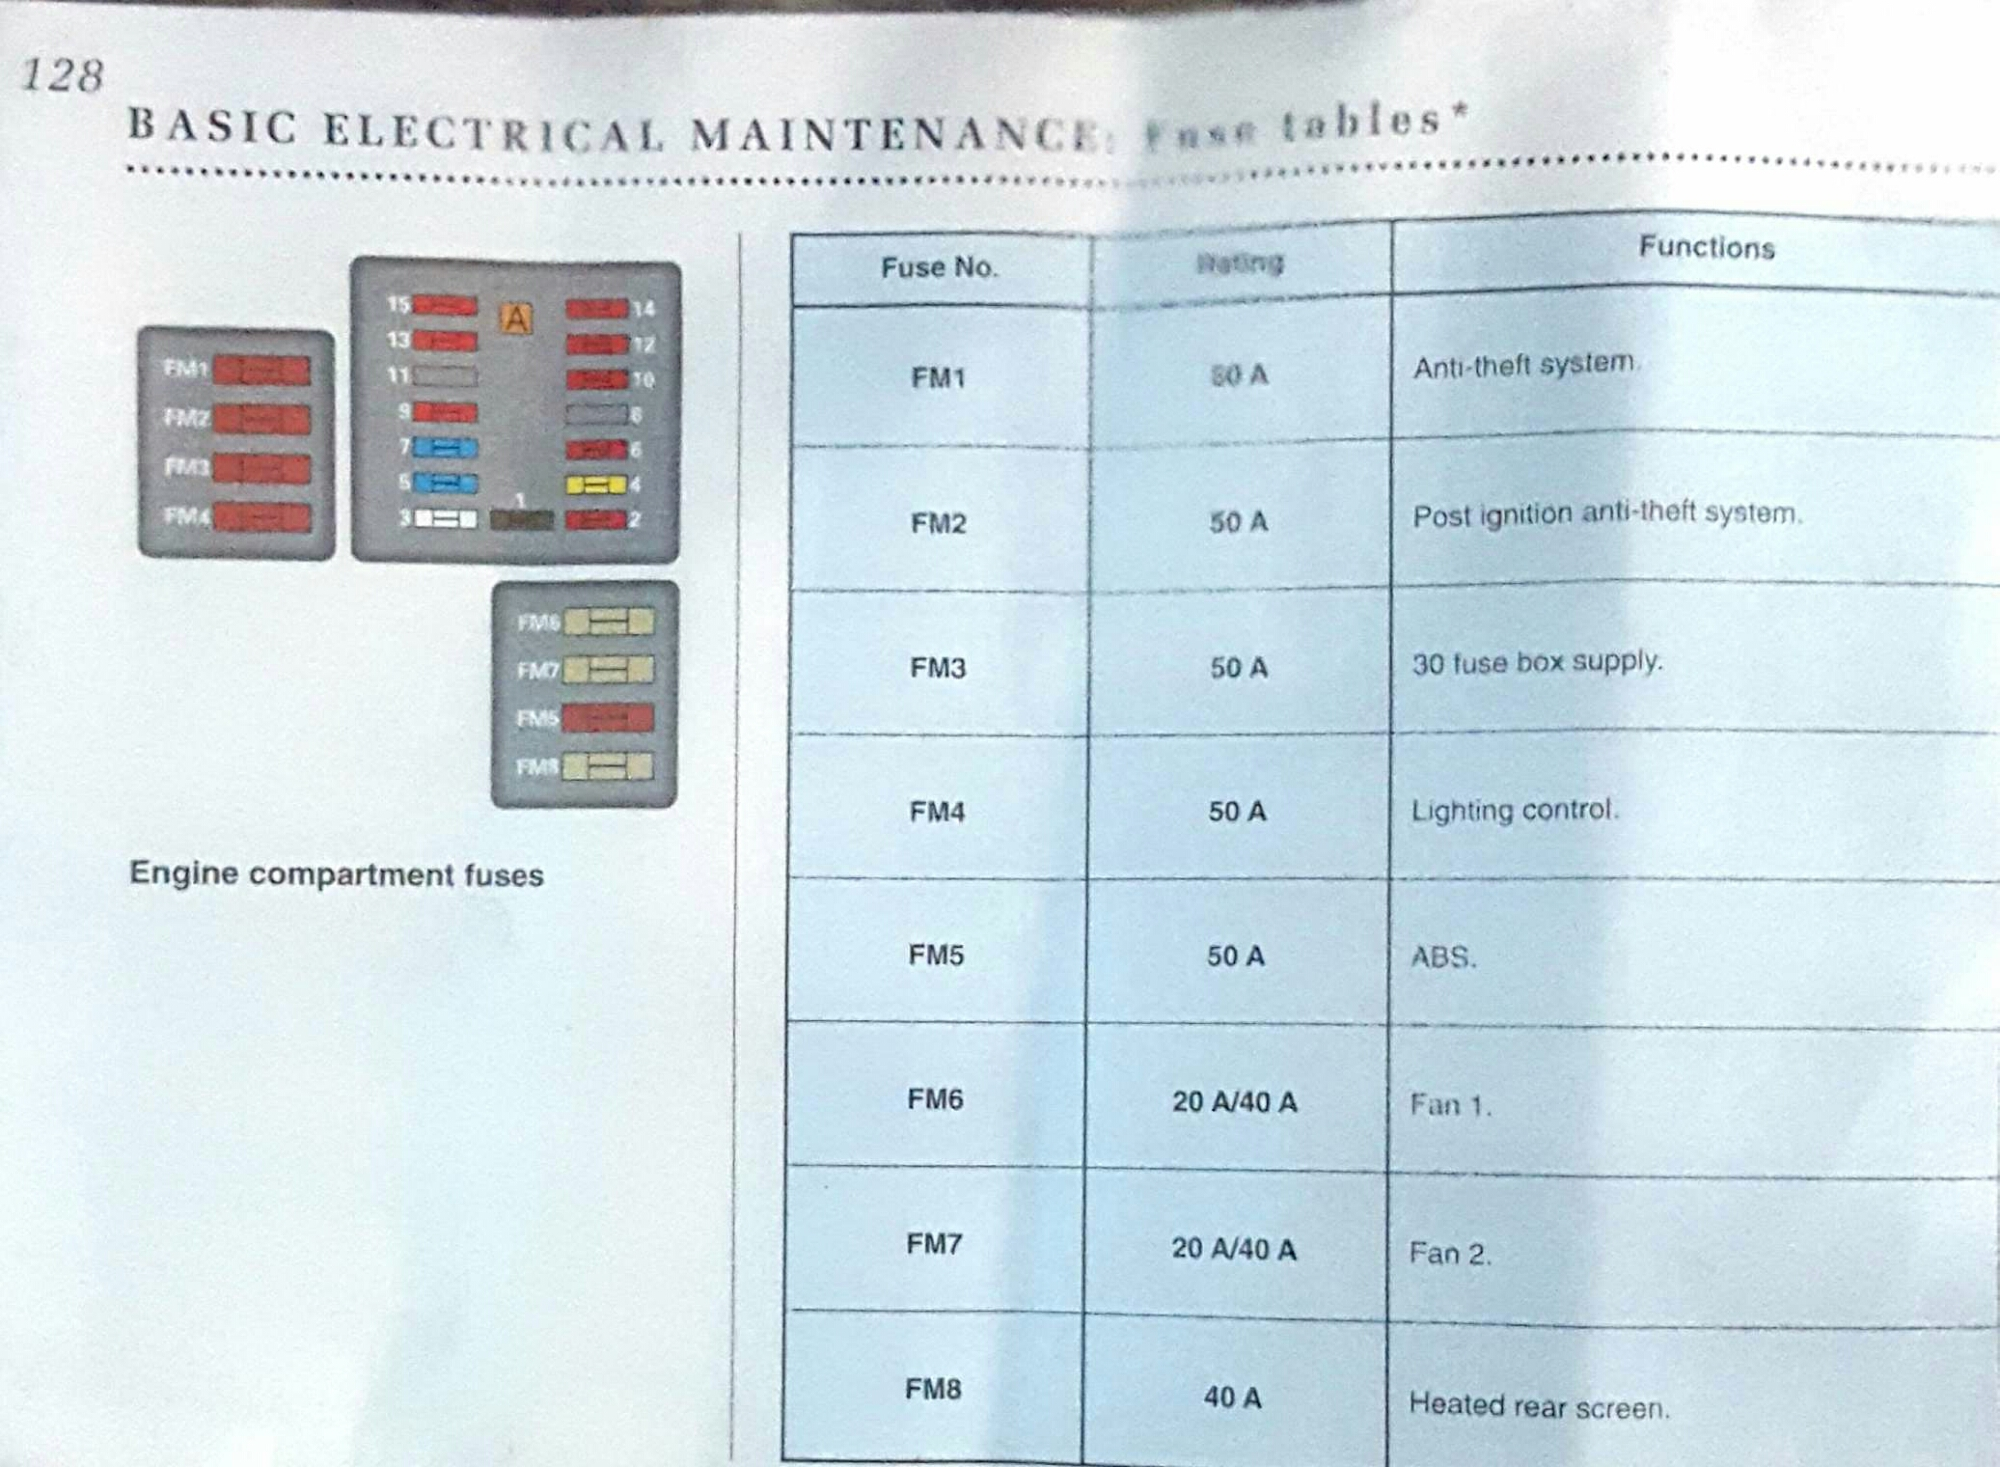 hight resolution of fuse box on peugeot 406 data diagram schematicpeugeot 406 fuse diagram wiring diagram today fuse box